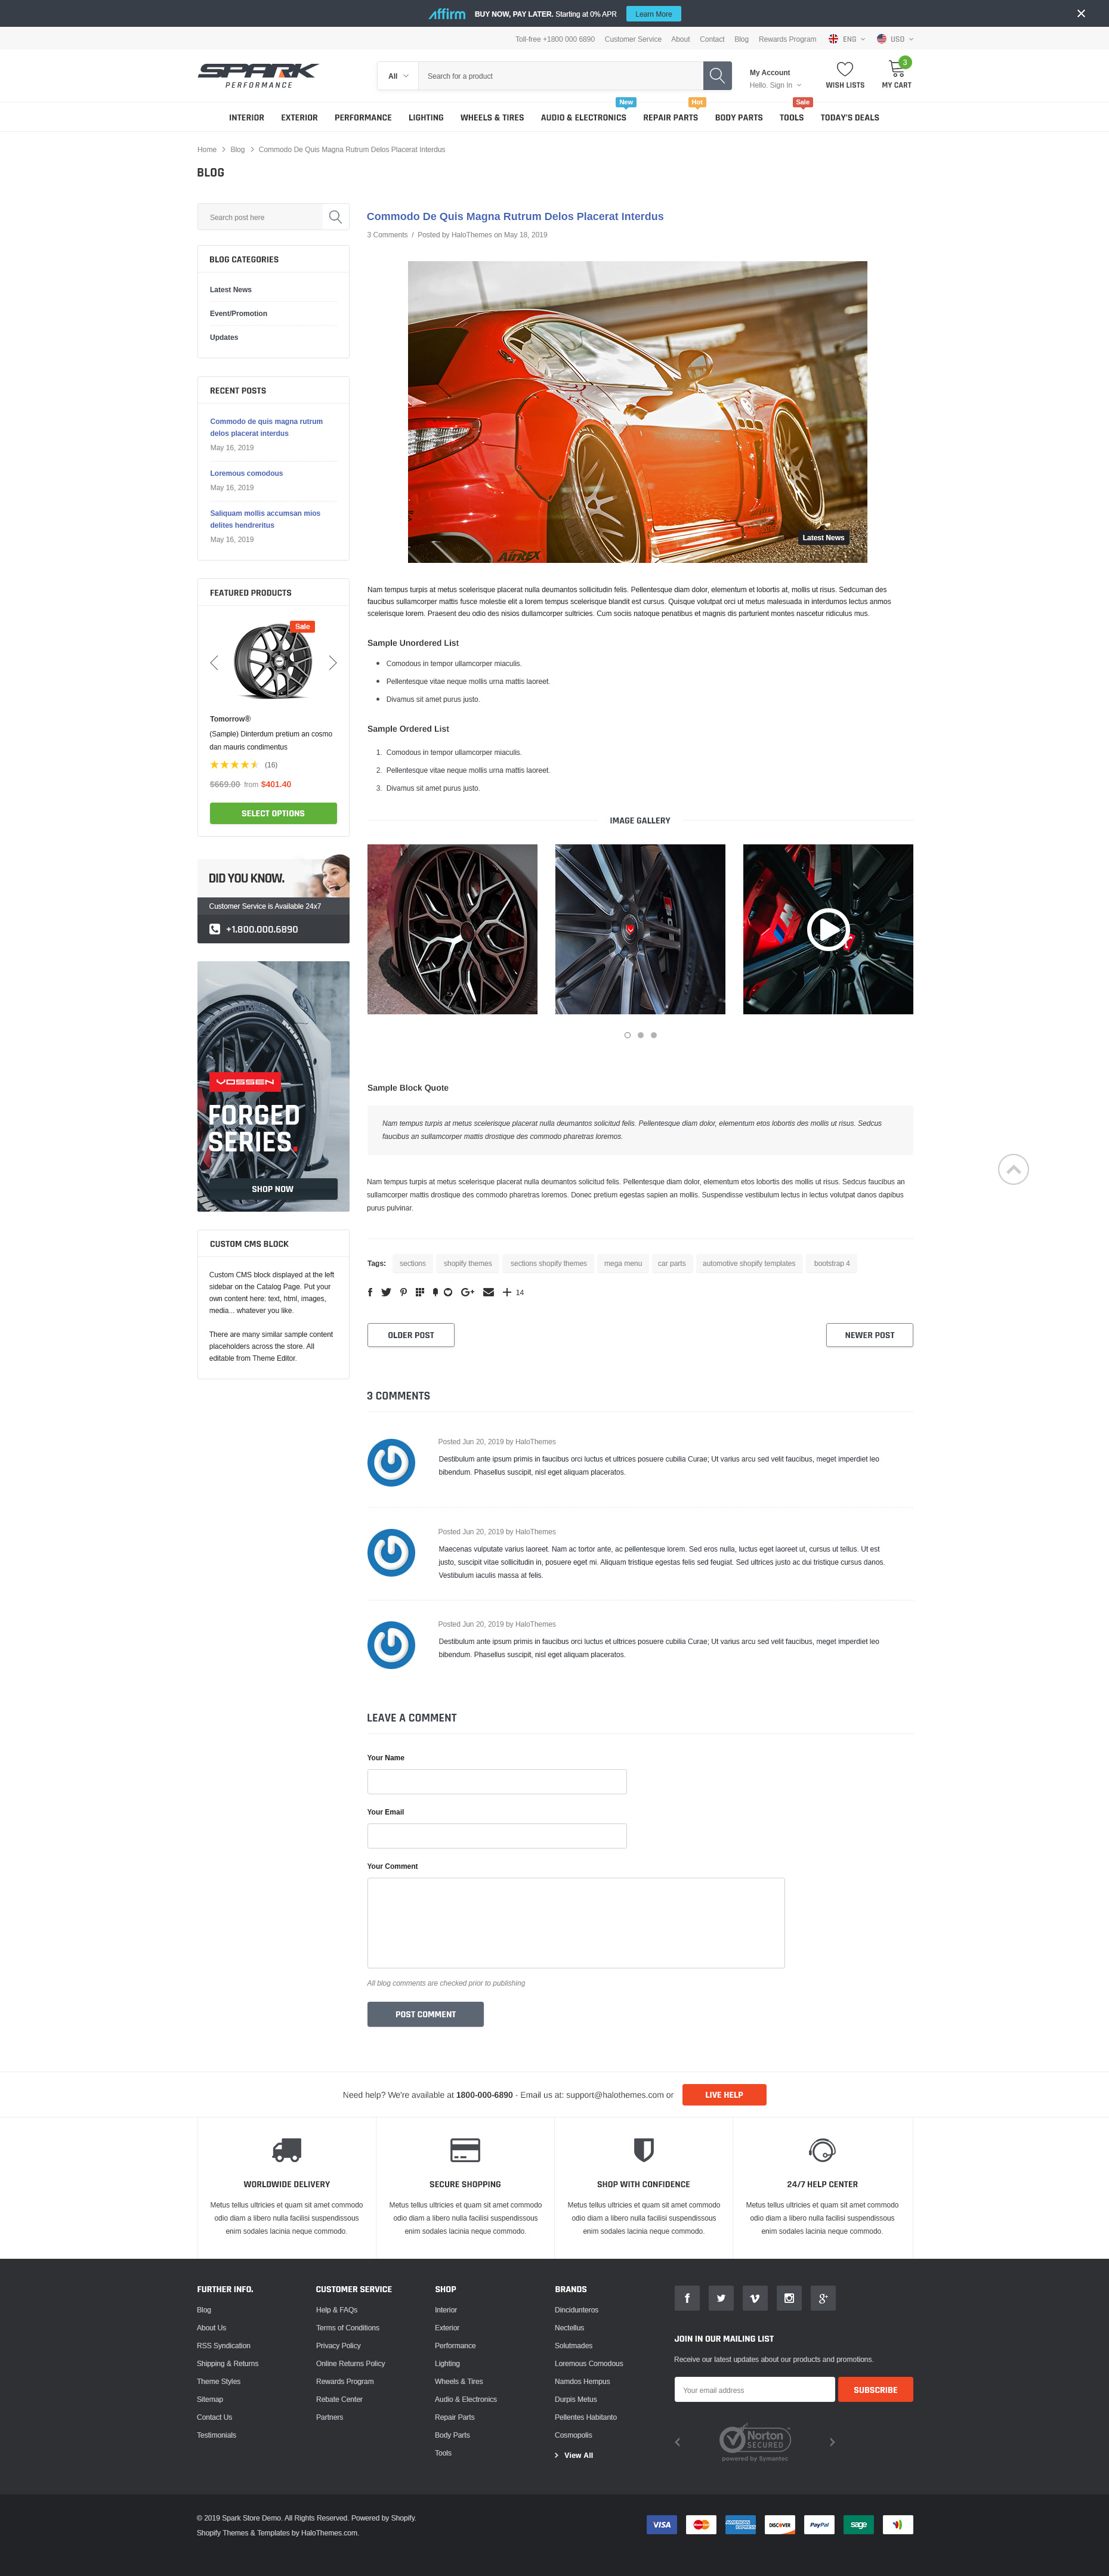 SPARK – Cars & Auto Parts Automotive Shopify Theme (Sections Ready)